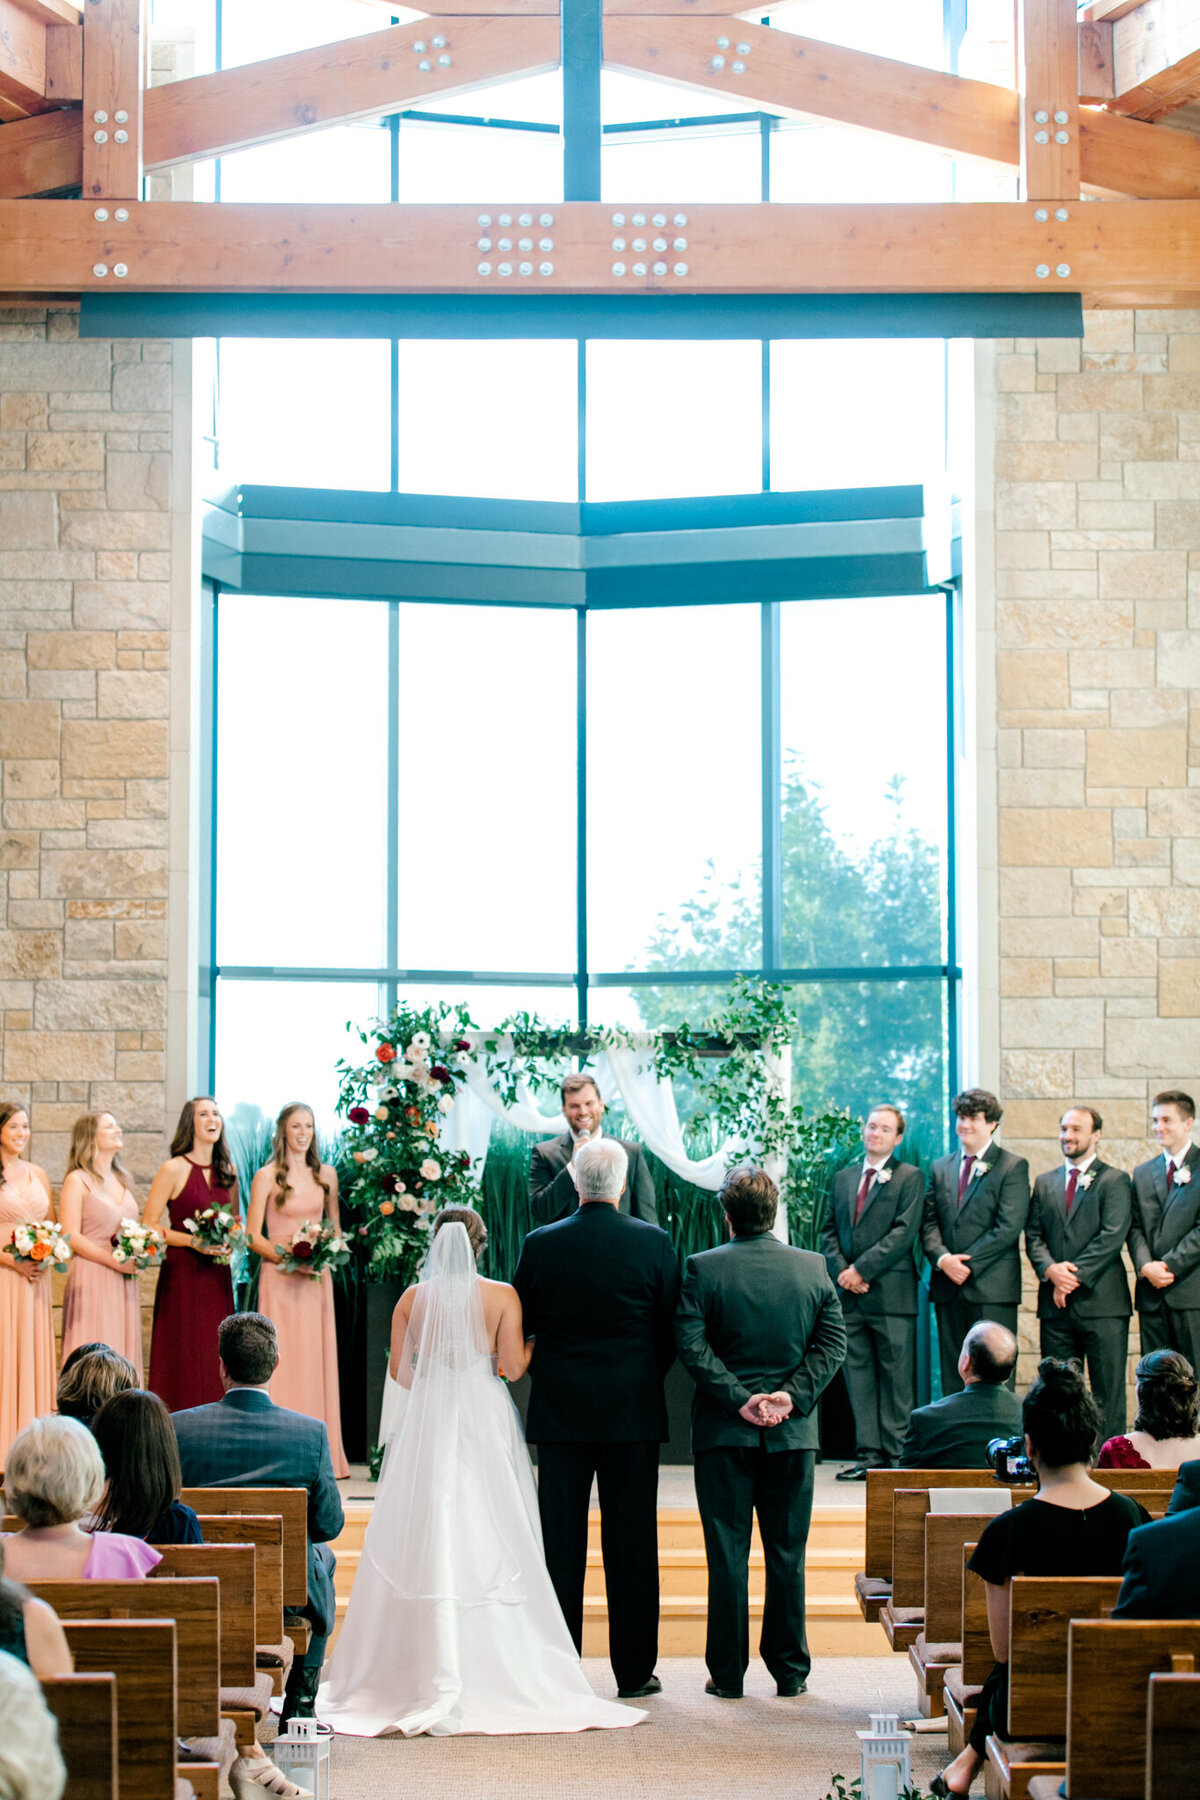 Kaylee & Michael's Wedding at Watermark Community Church | Dallas Wedding Photographer | Sami Kathryn Photography-106